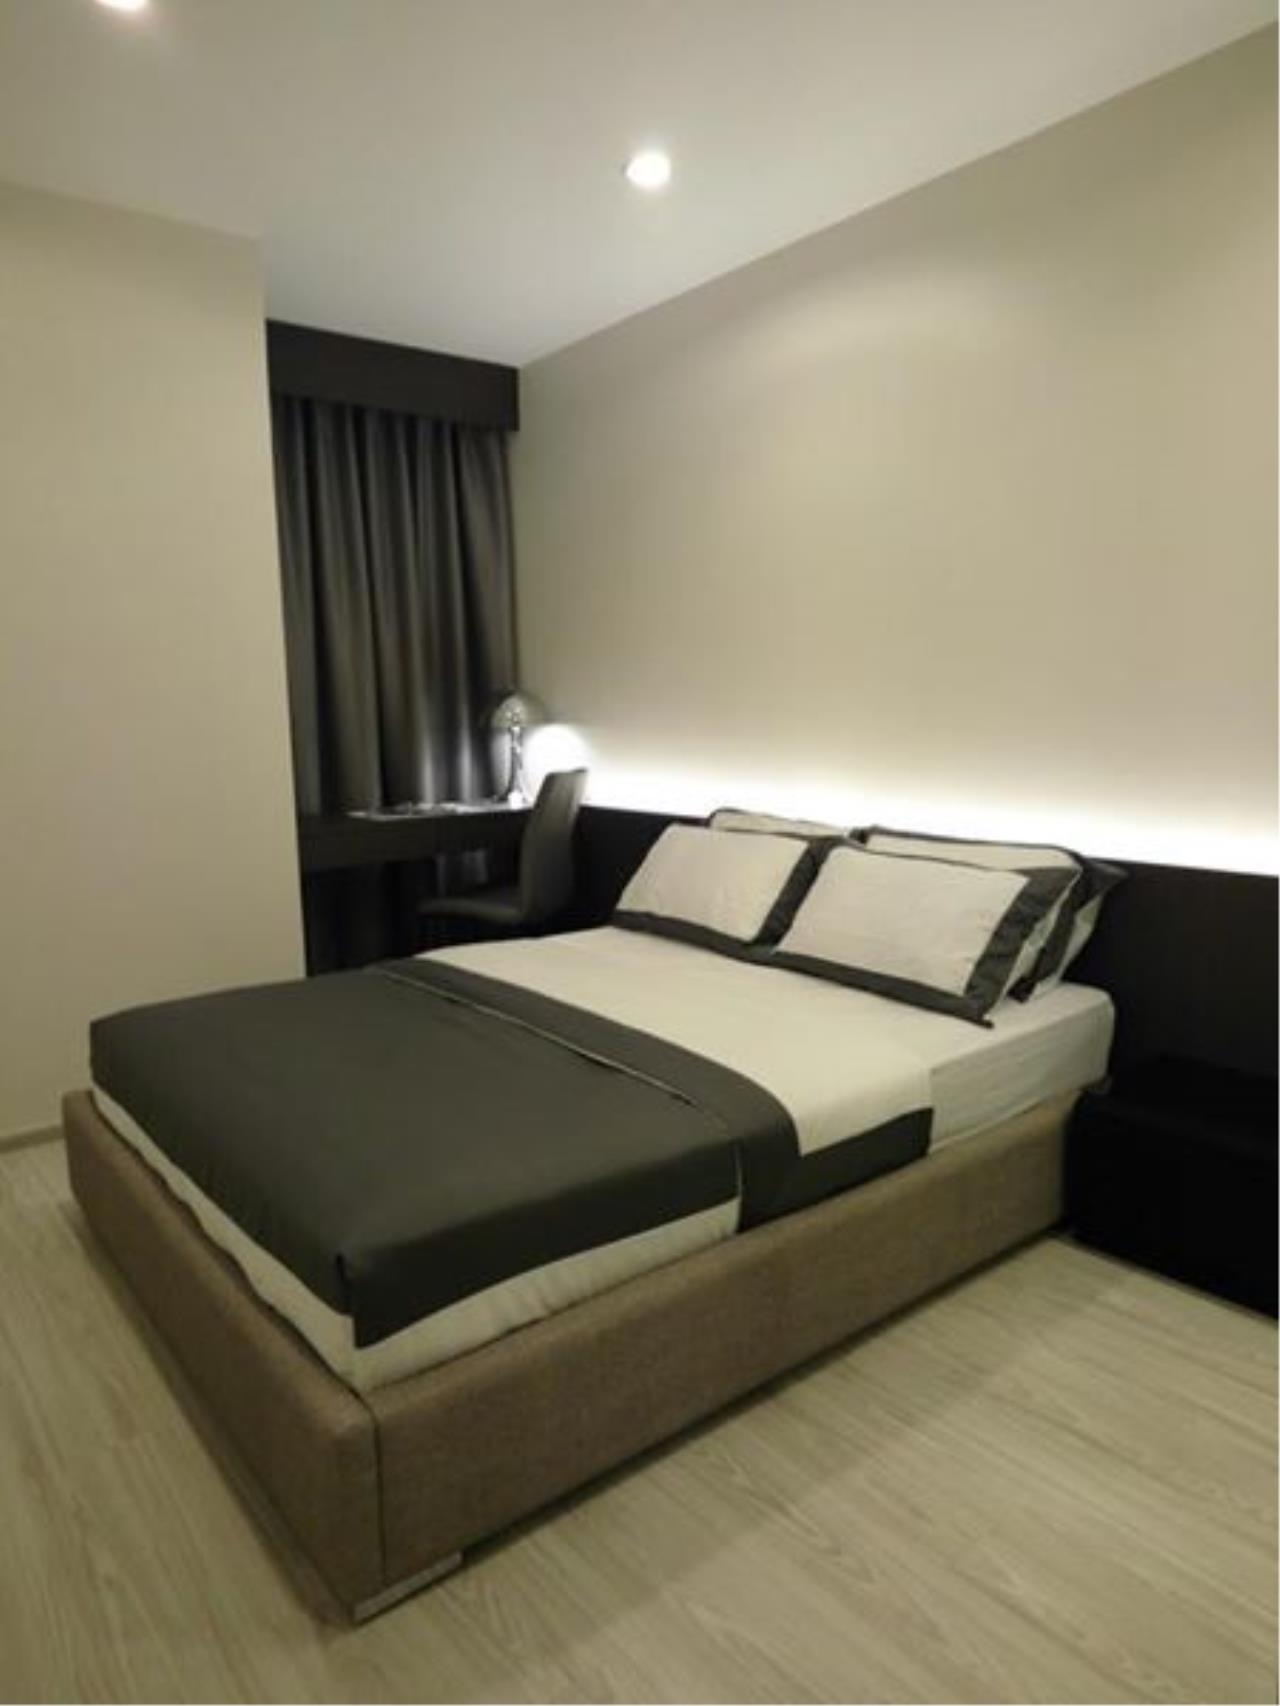 RE/MAX All Star Realty Agency's Ideo Mobi Eastgate, 1 bedroom, high floor for rent. Near BTS Bangna 8